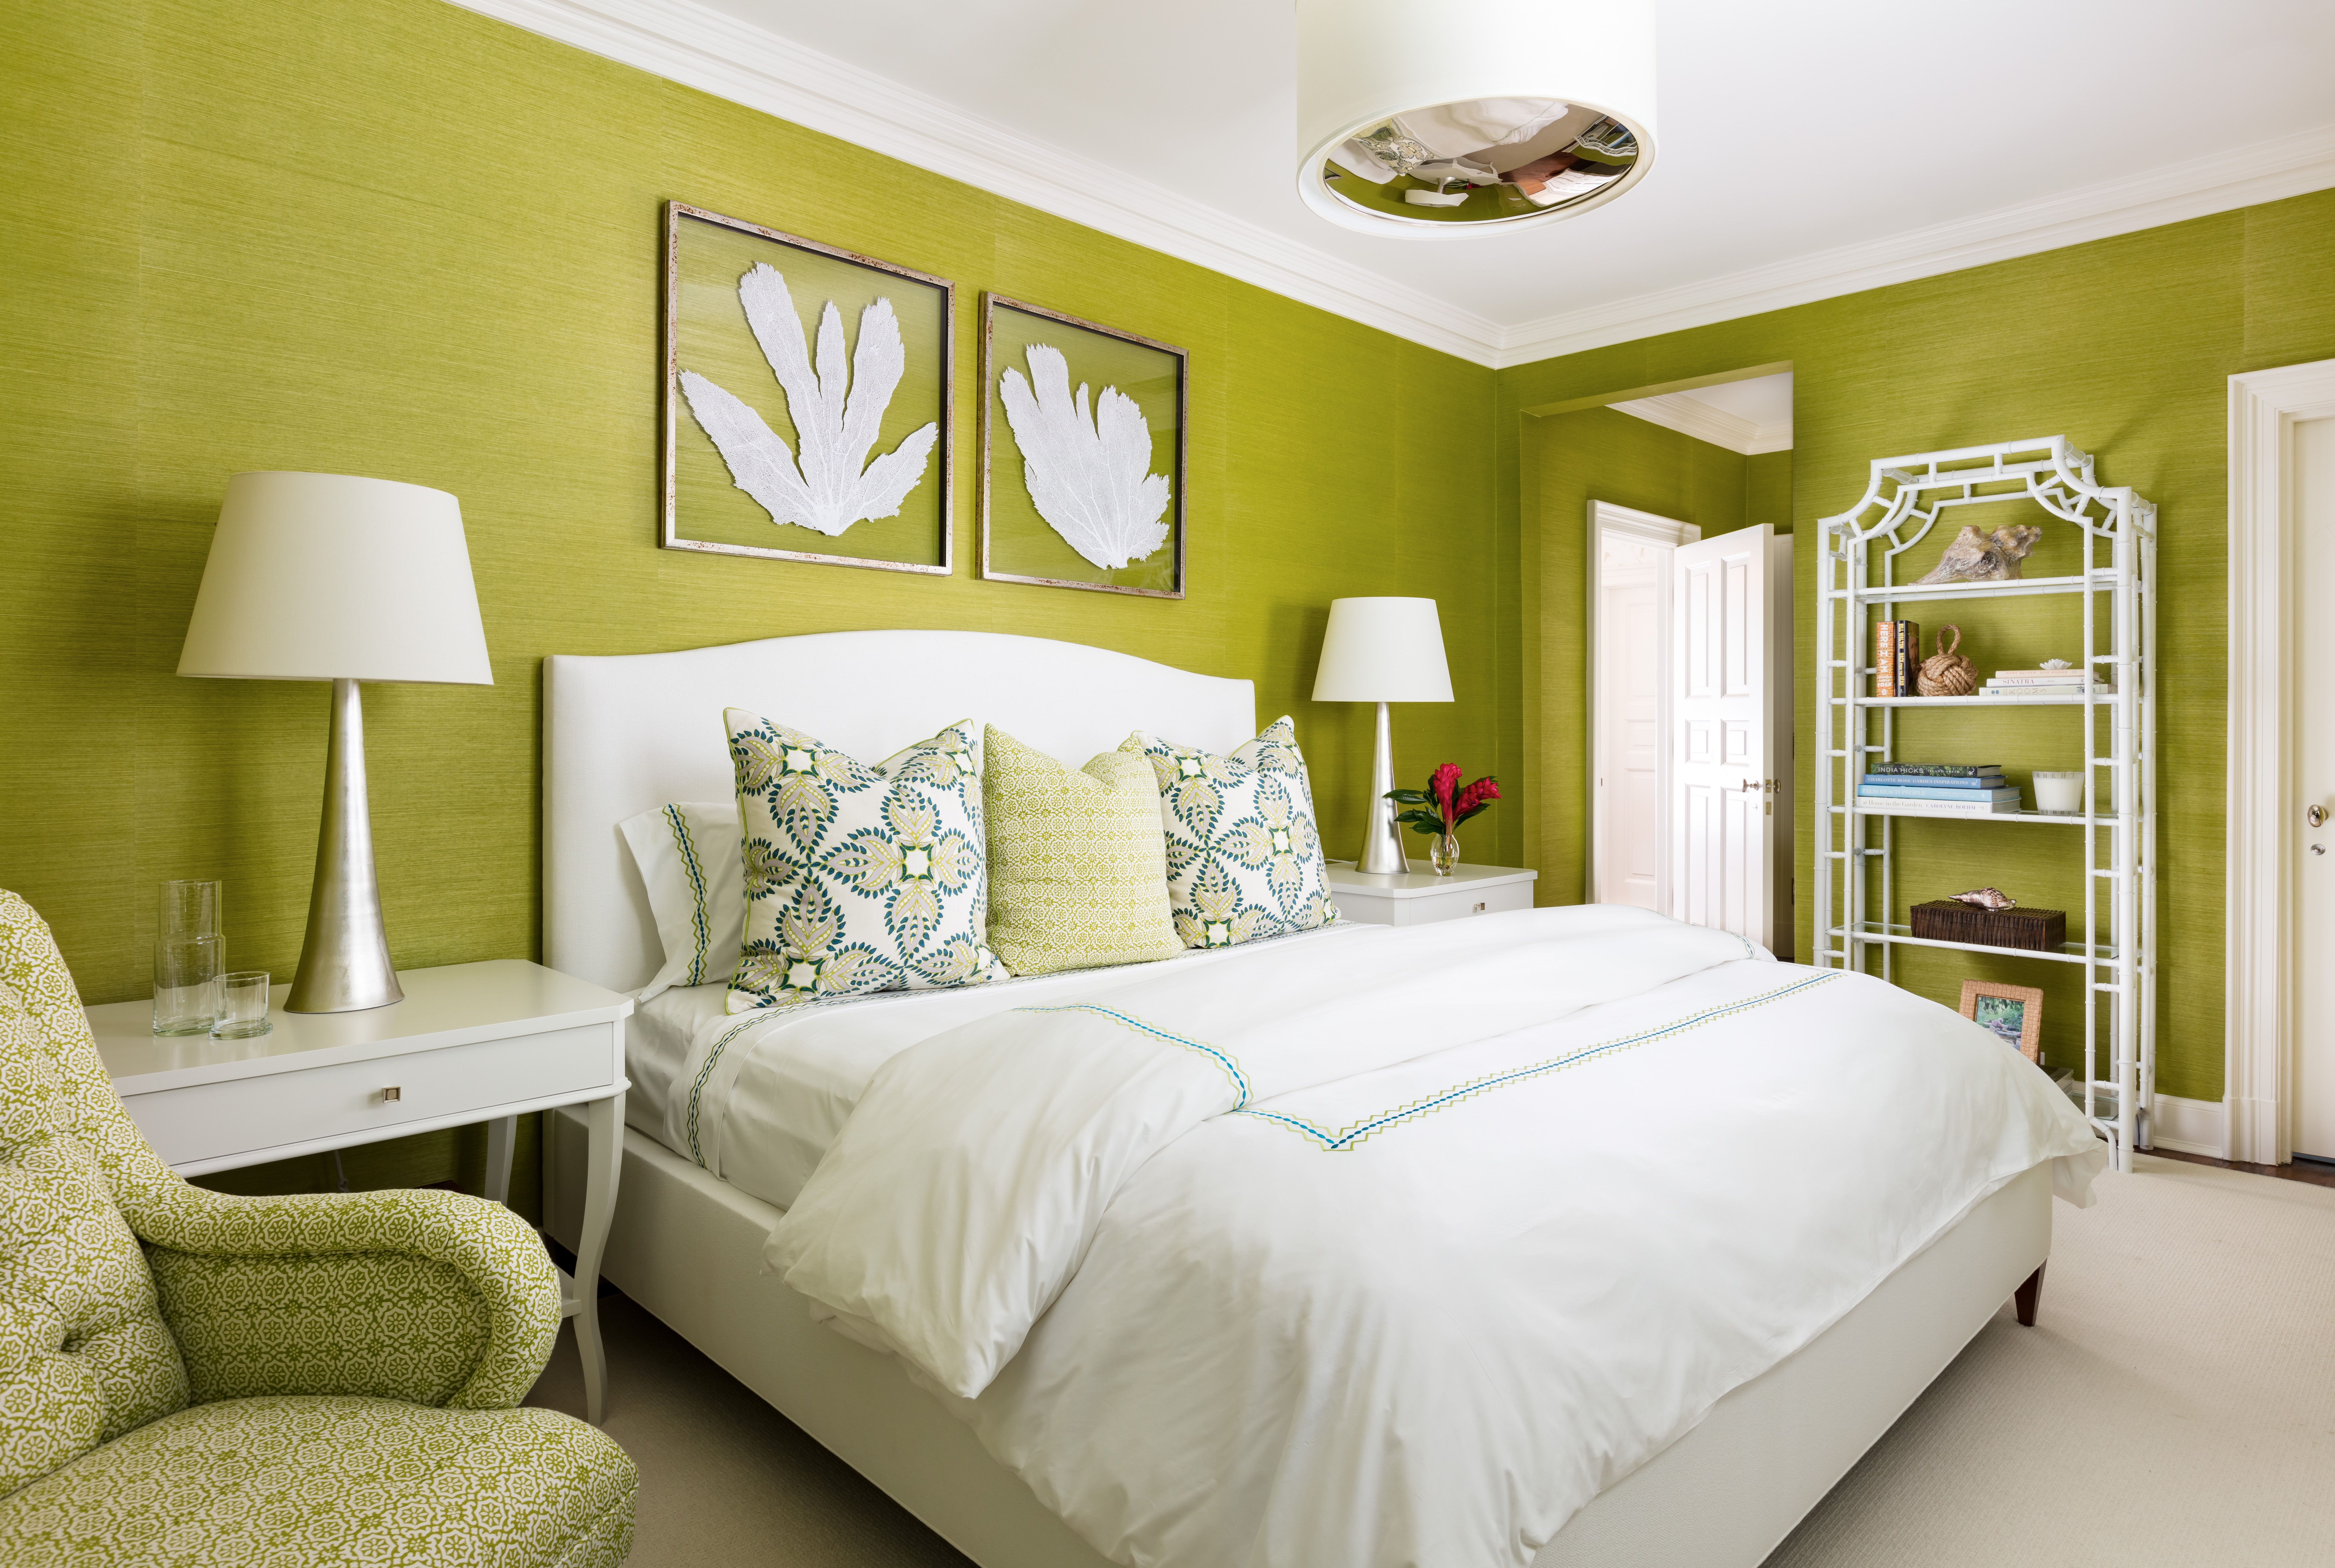 Pin by HIVE Collective on BEDROOMS | Lime green bedrooms ...